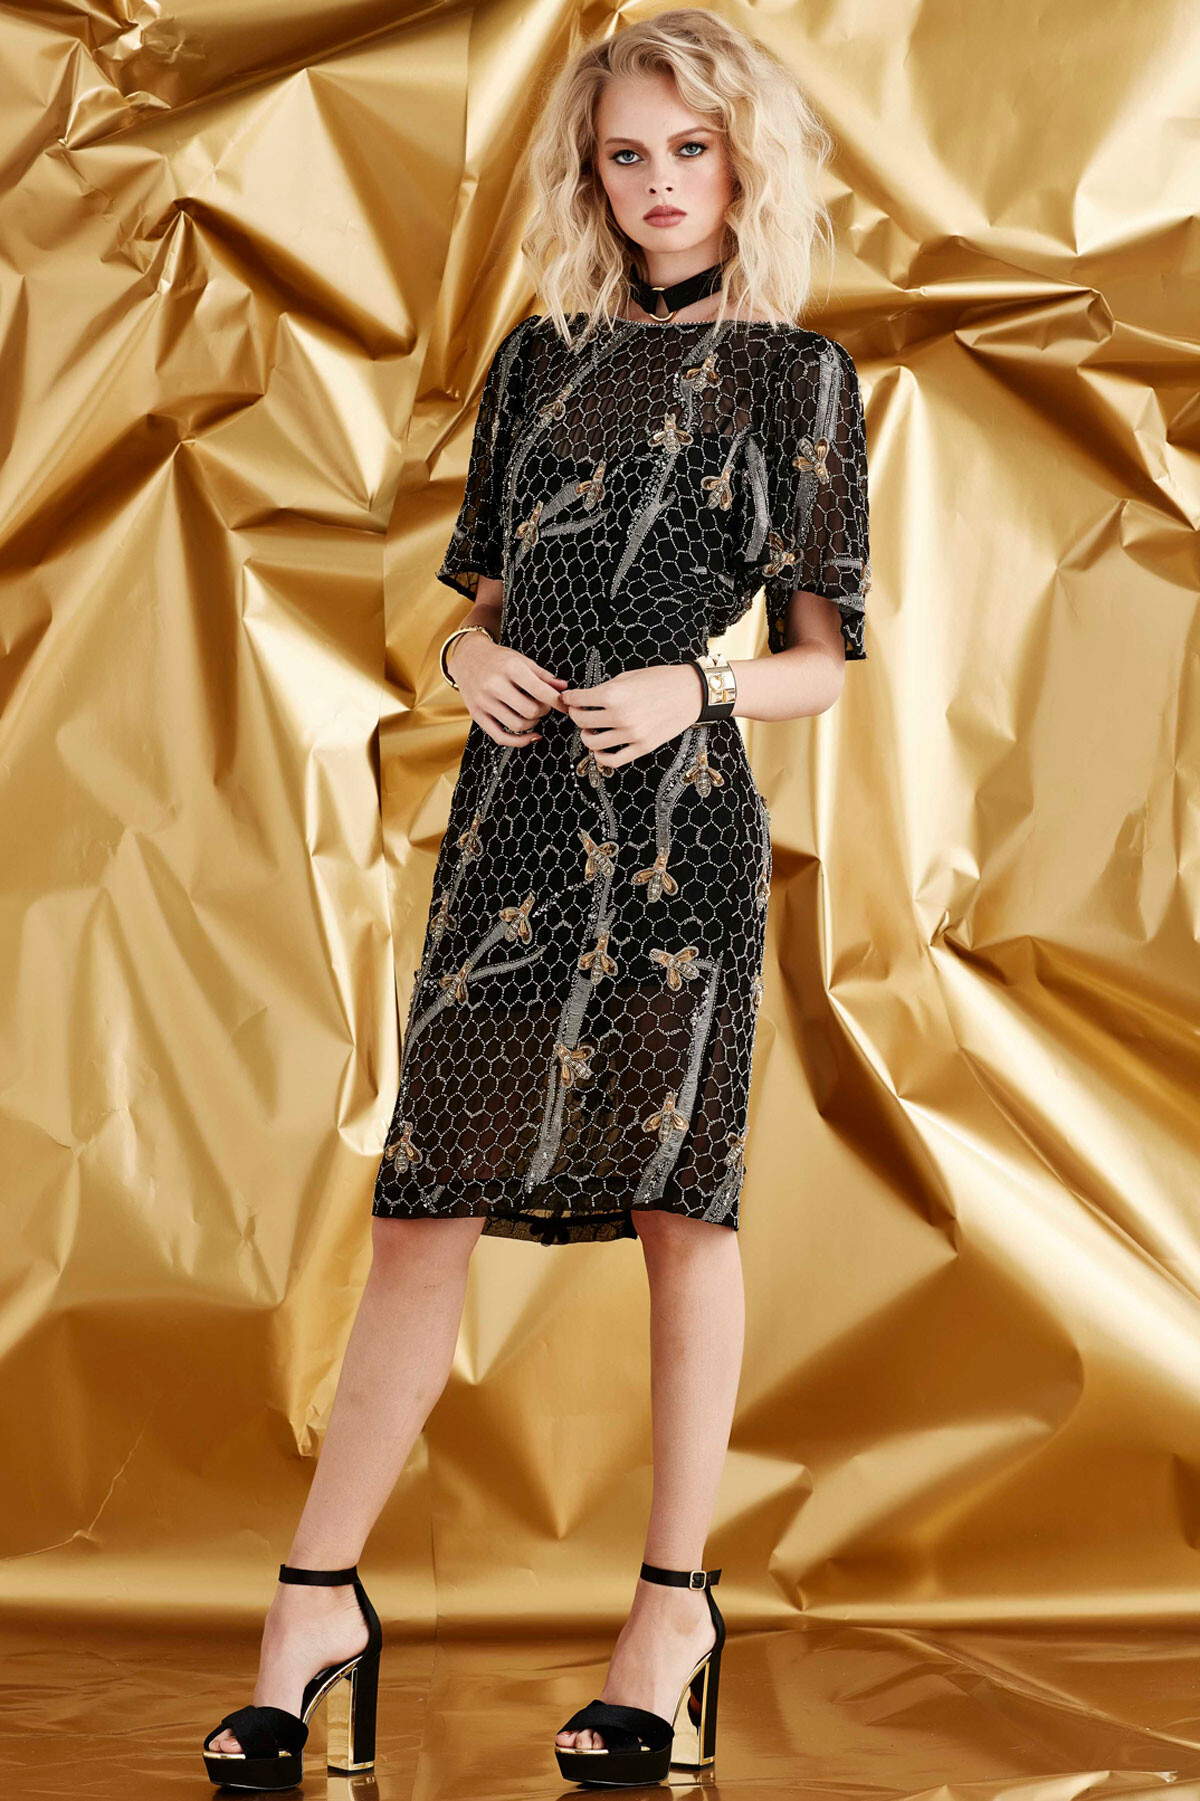 QUEEN B DRESS - Shop by Style-Dresses : Home - TRELISE COOPER SPRING 18